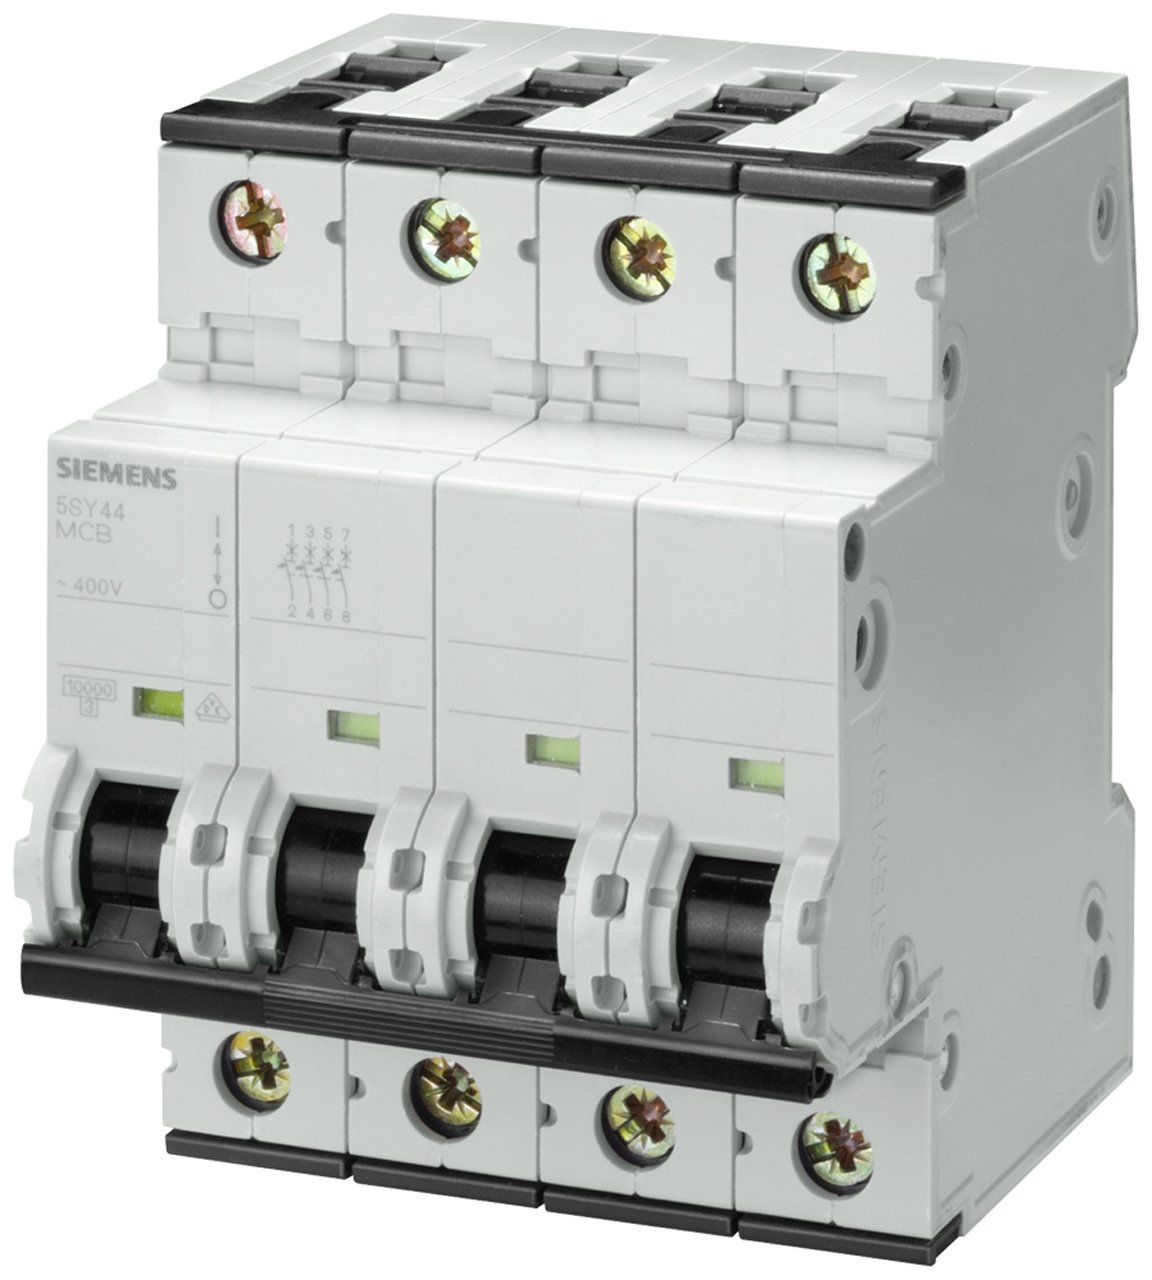 Siemens 5SY44067 Supplementary Protector, UL 1077 Rated, 4 Pole Breaker, 6 Ampere Maximum, Tripping Characteristic C, DIN Rail mounted